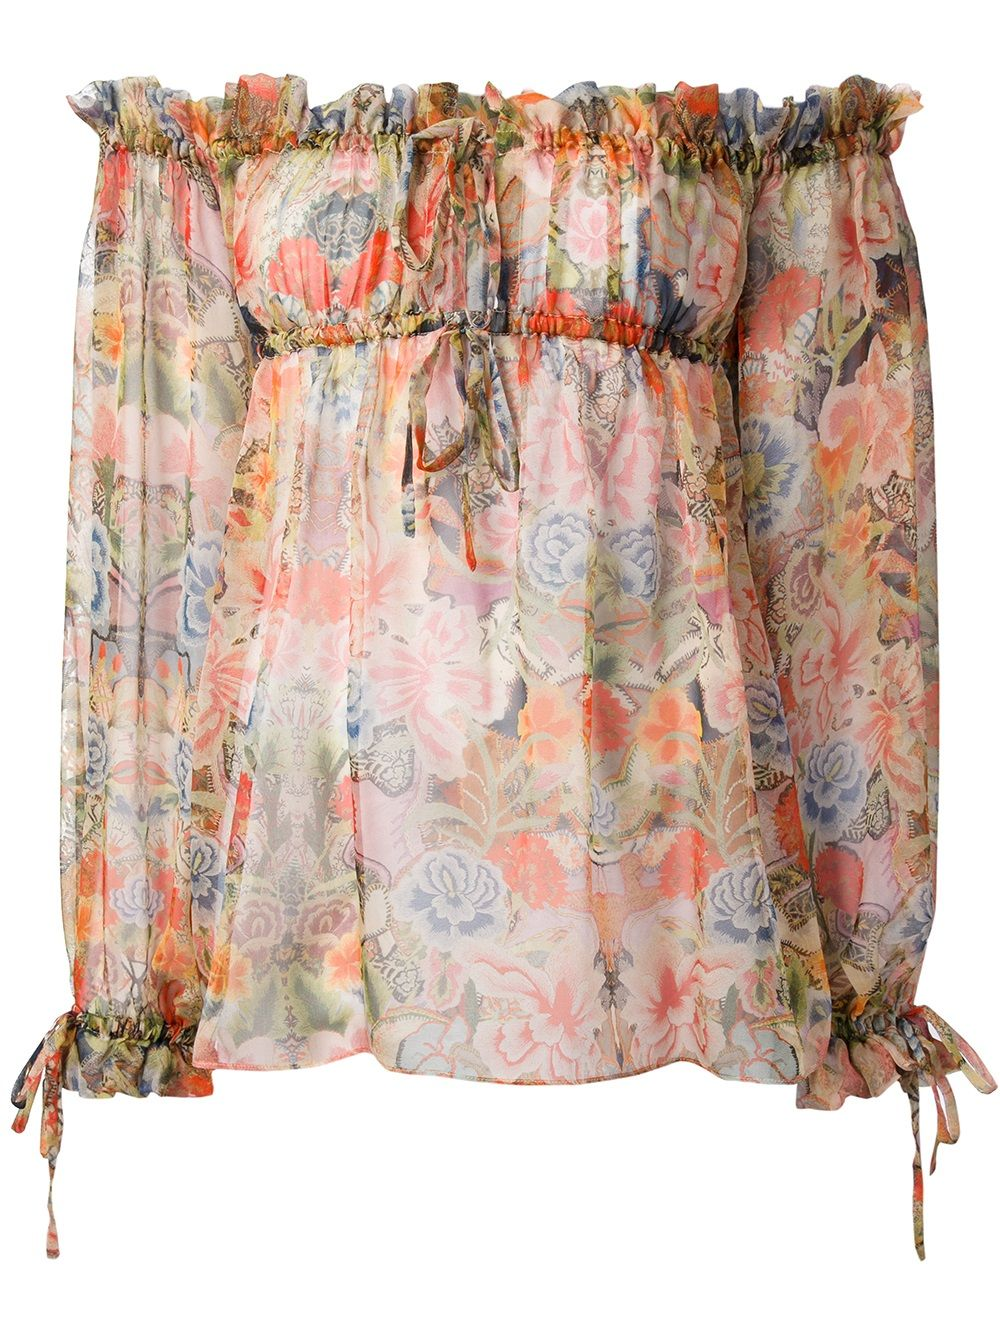 Multi-colour silk blouse from Alexander McQueen featuring a gathered square neckline, an empire line silhouette, a floral print, three-quarter length sleeves with tie fastening cuffs and a curved hemline.